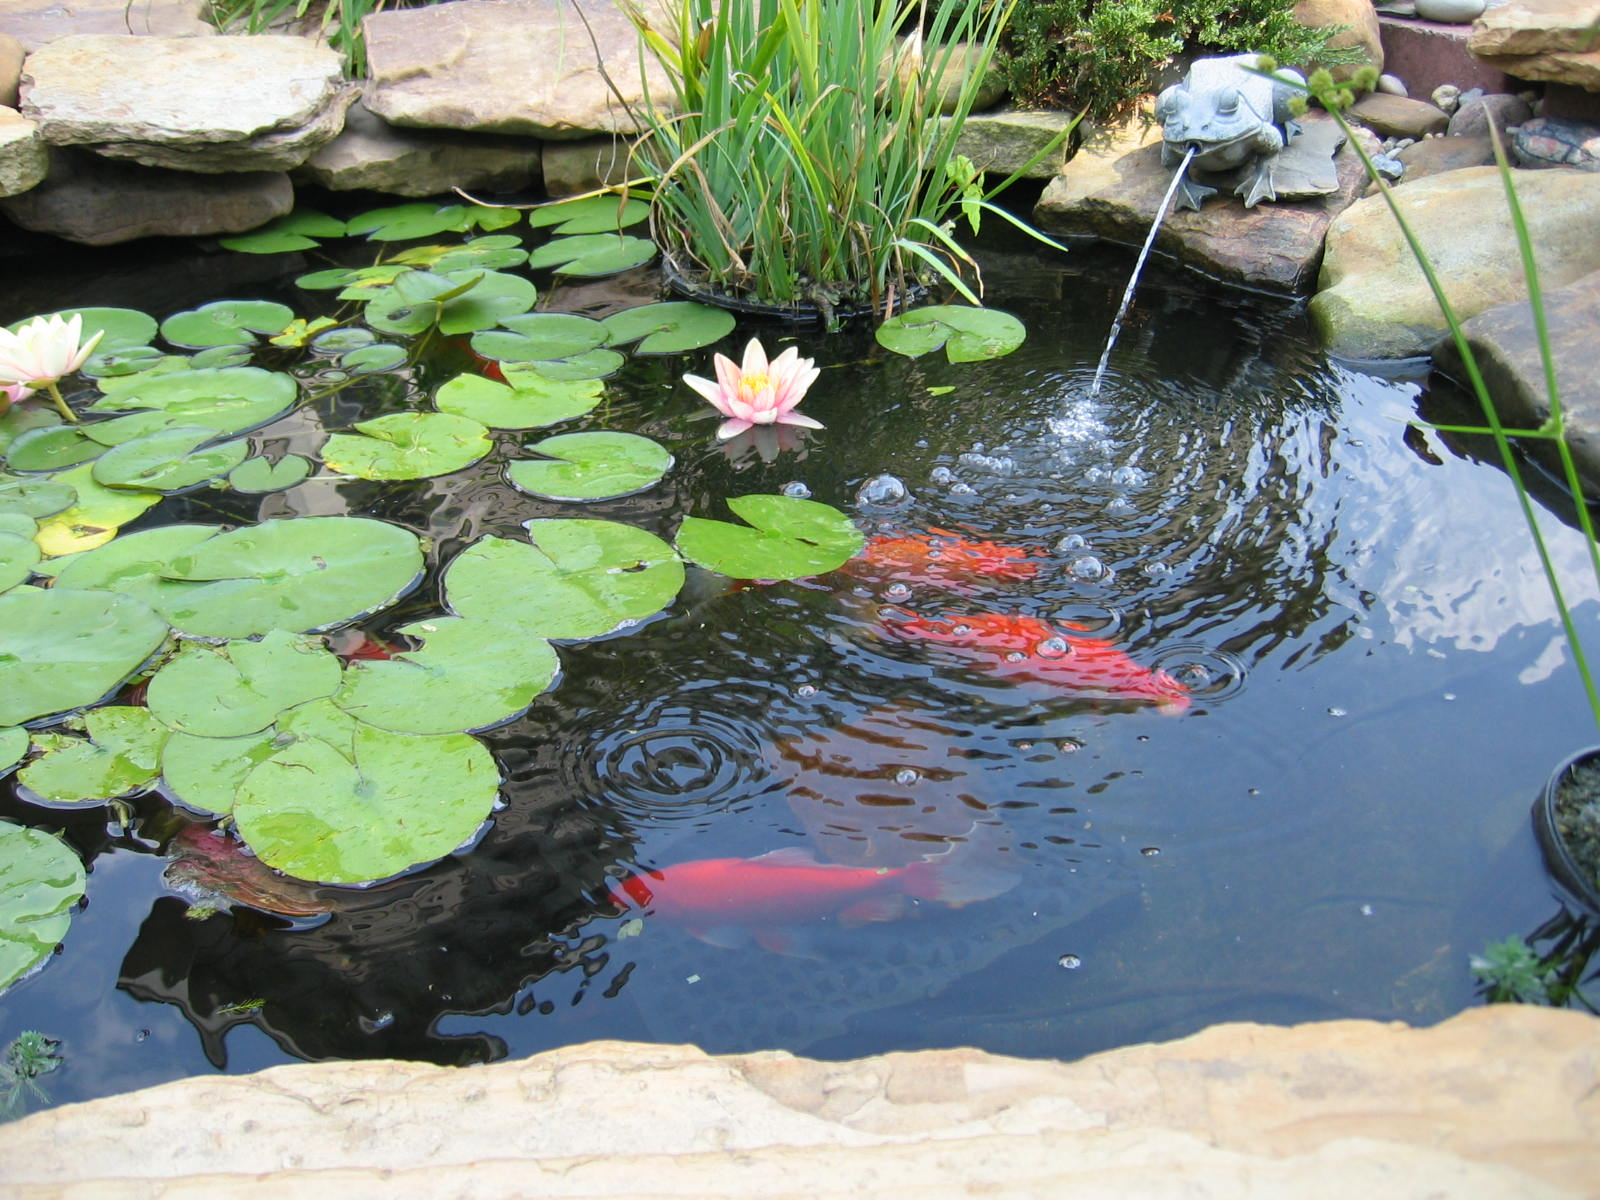 Small Backyard Water Features | Modern Diy Art Designs on Small Backyard Water Features id=51363